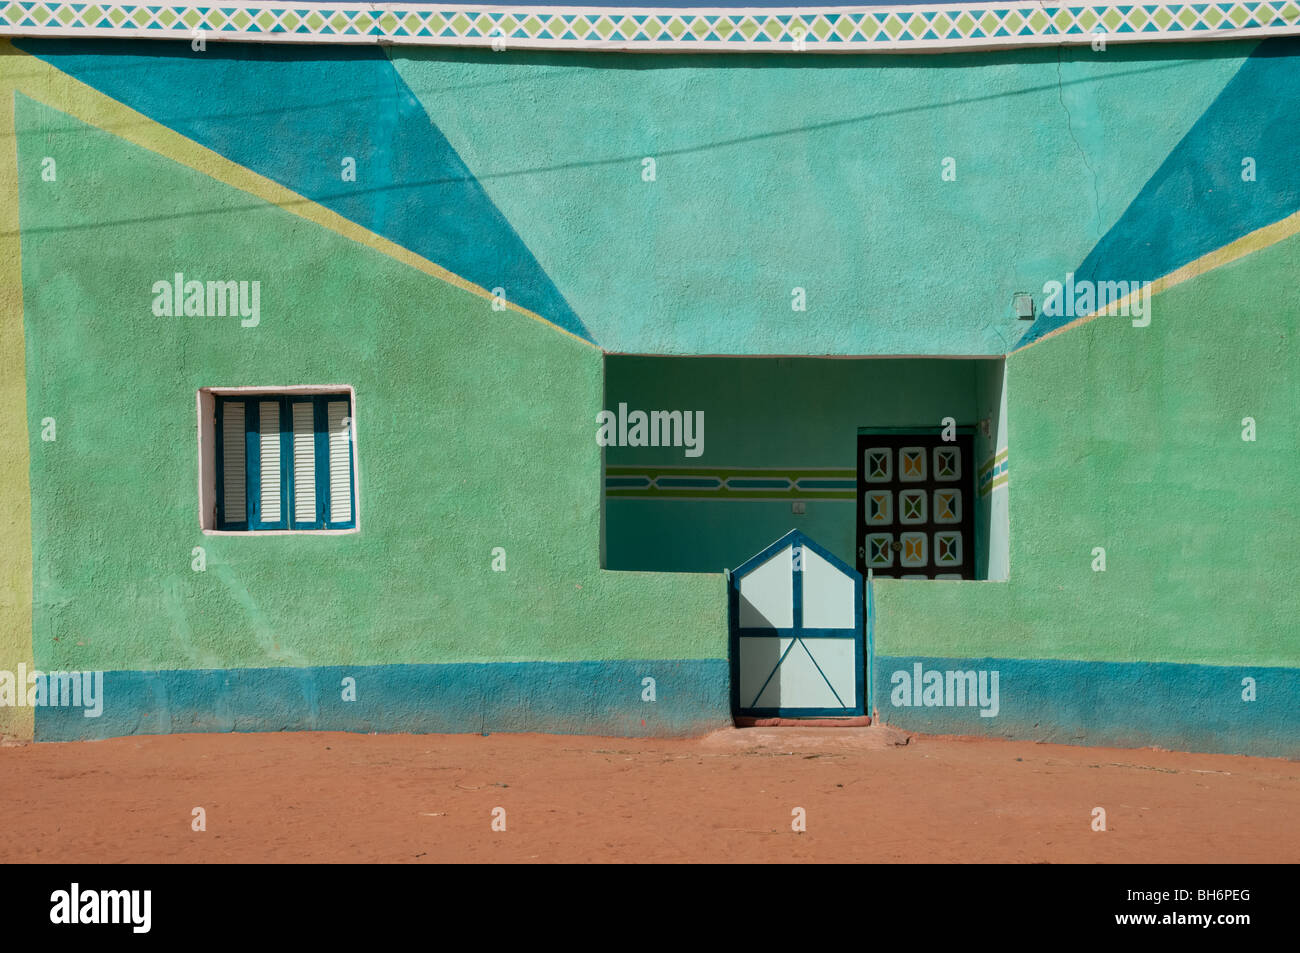 A colorful house in the desert village of Balat in Egypt's Dakhla Oasis. - Stock Image